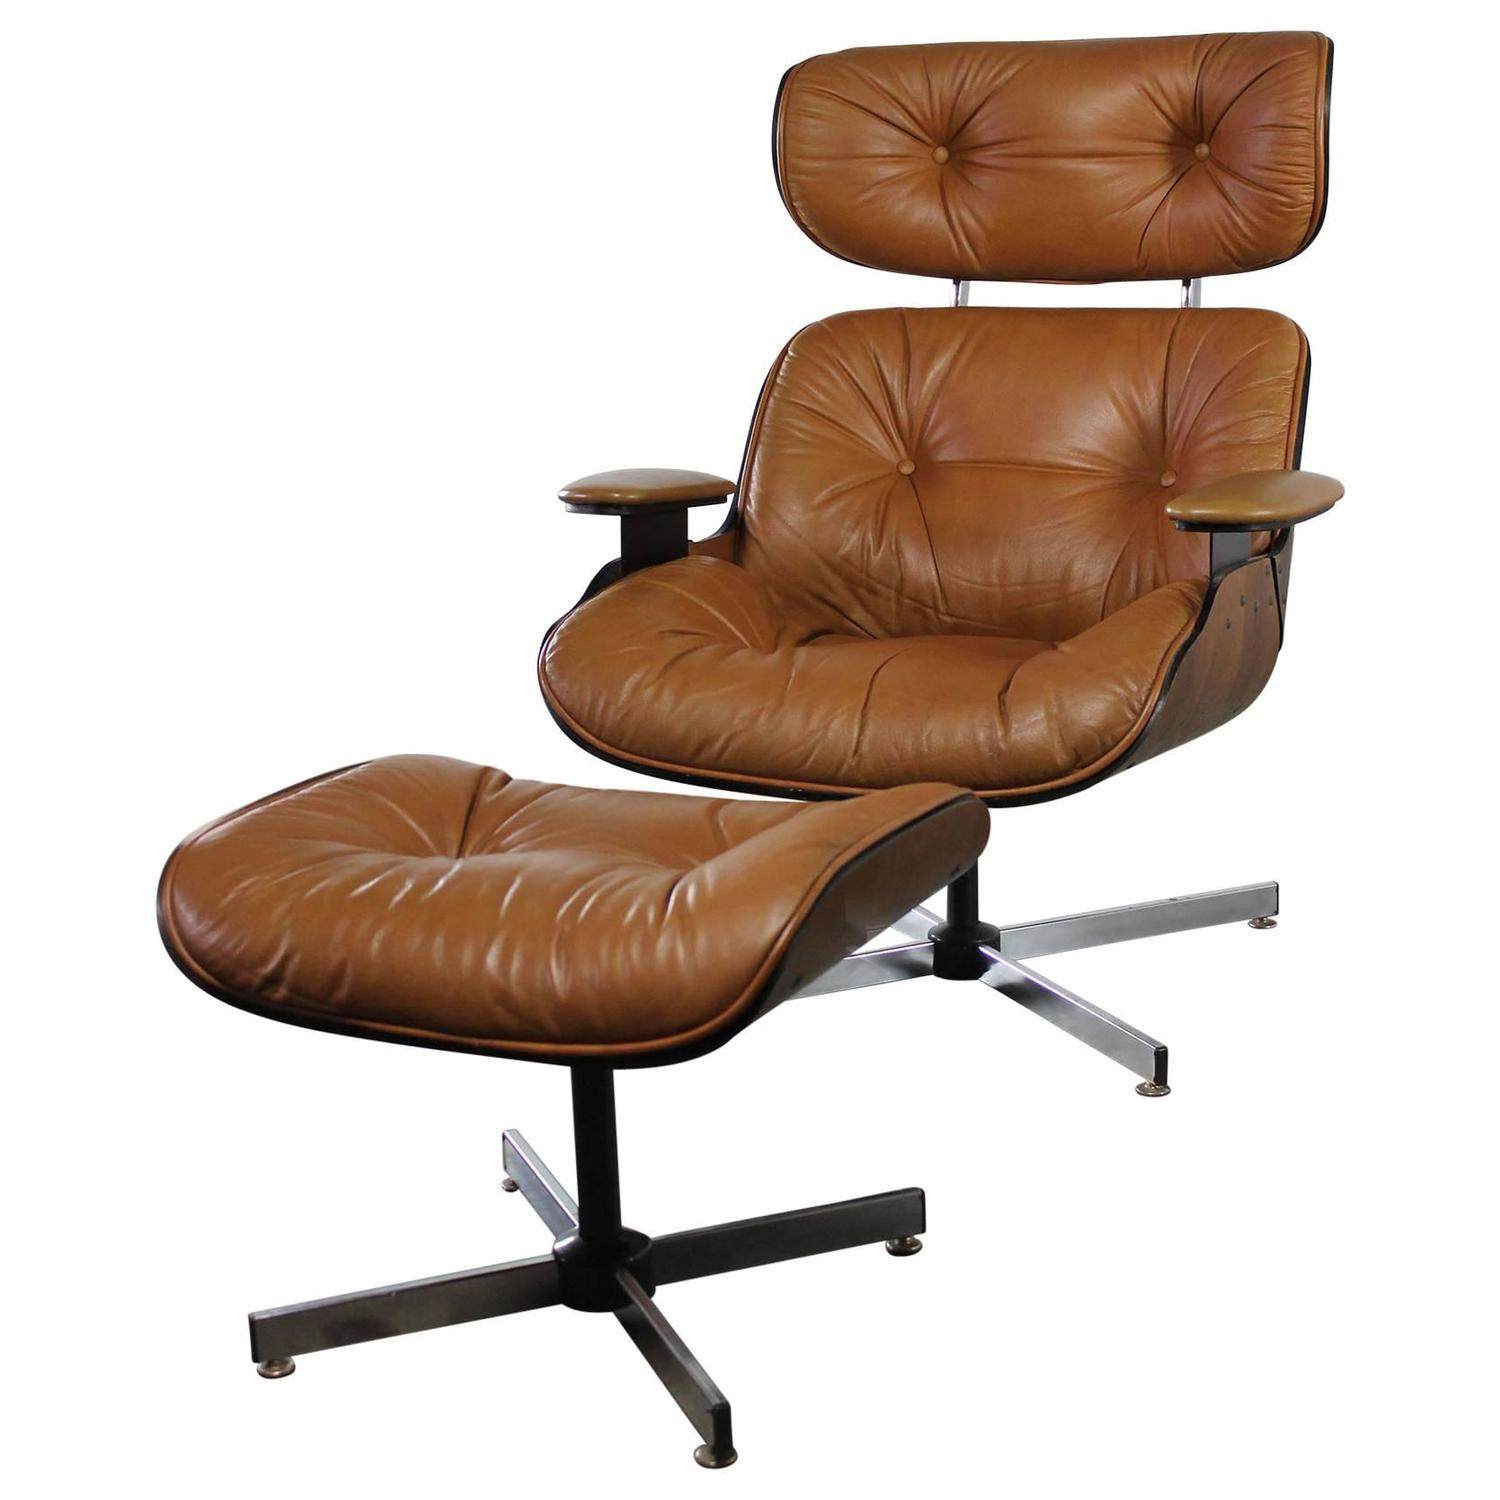 image loading molded design century s itm style lounge wood eames is ash mid chair plywood